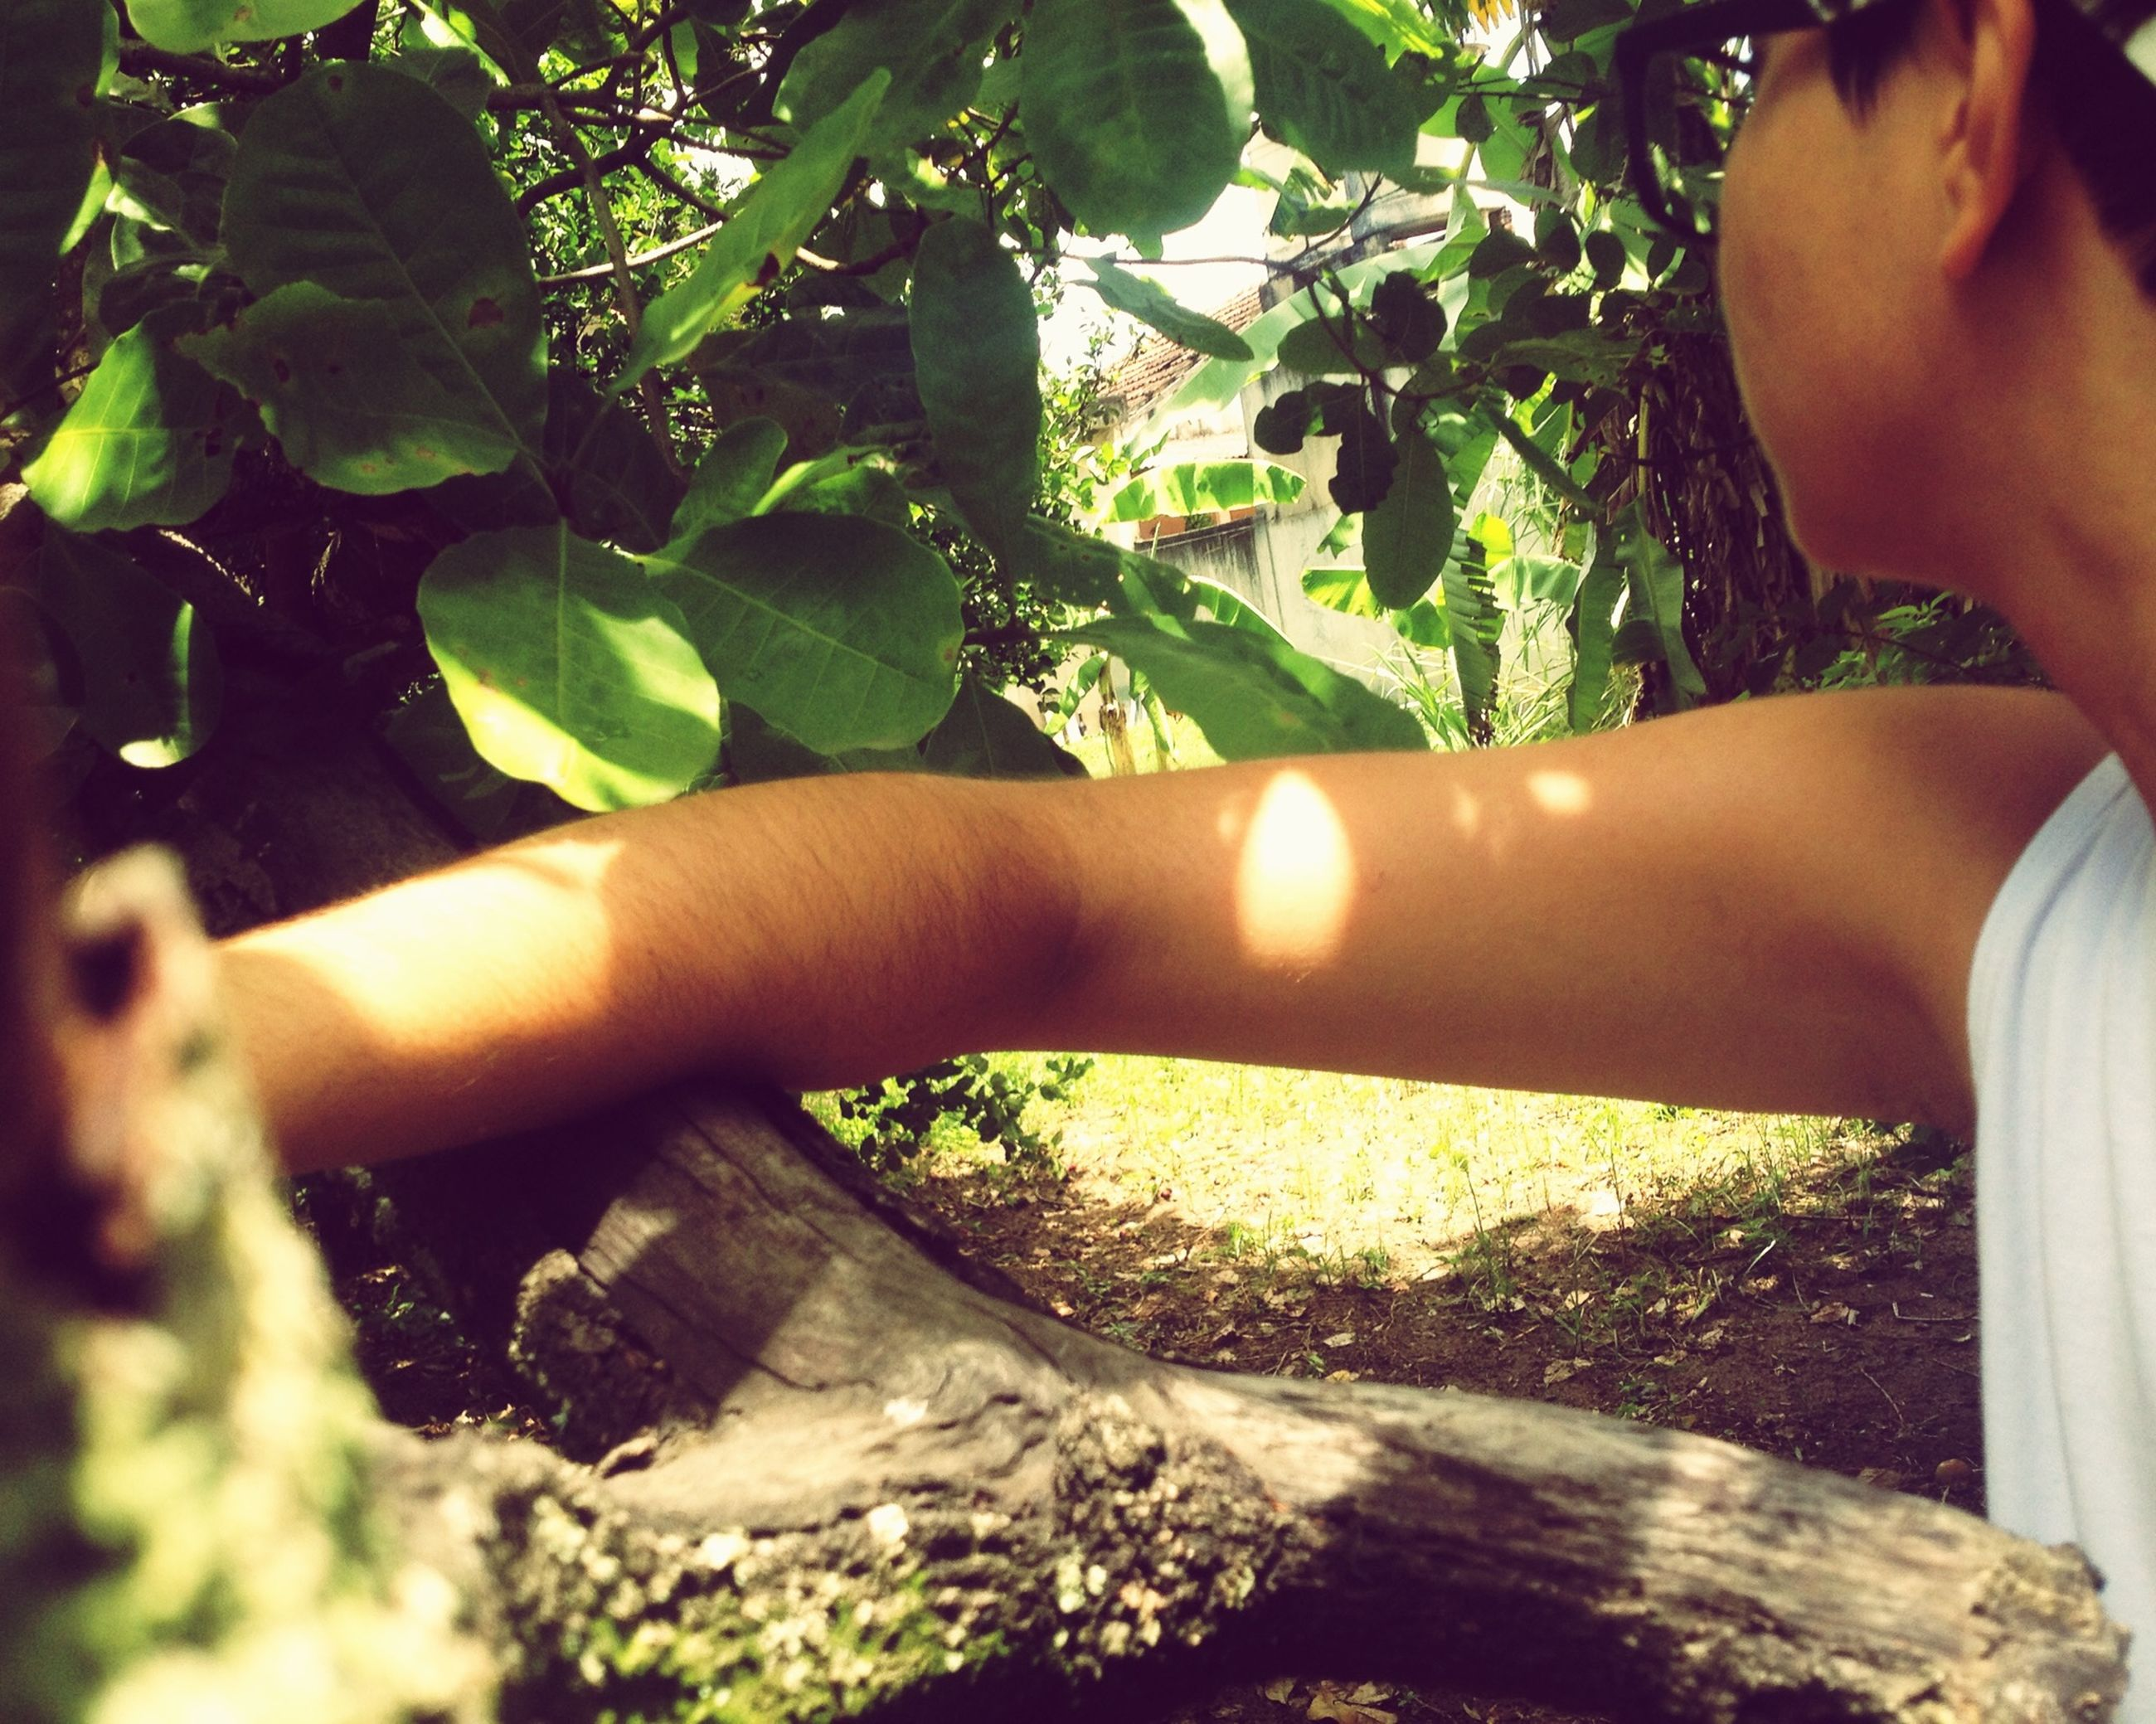 lifestyles, person, part of, leisure activity, cropped, tree, sunlight, holding, close-up, leaf, personal perspective, growth, low section, human finger, green color, day